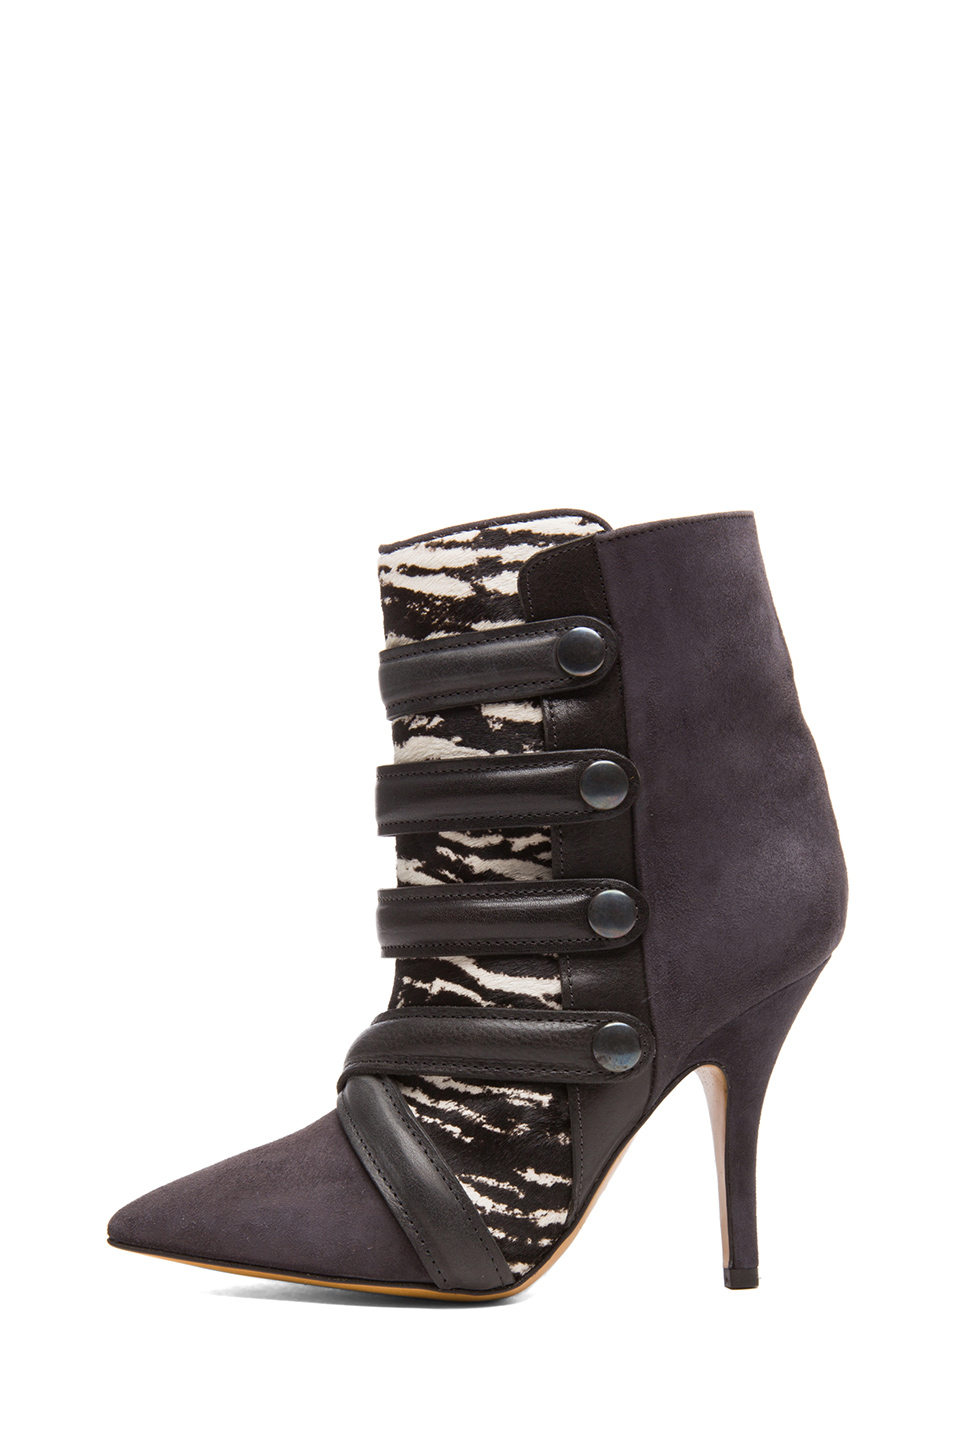 Isabel Marant|Tacy Goat Suede Leather Pony Booties in Anthracite